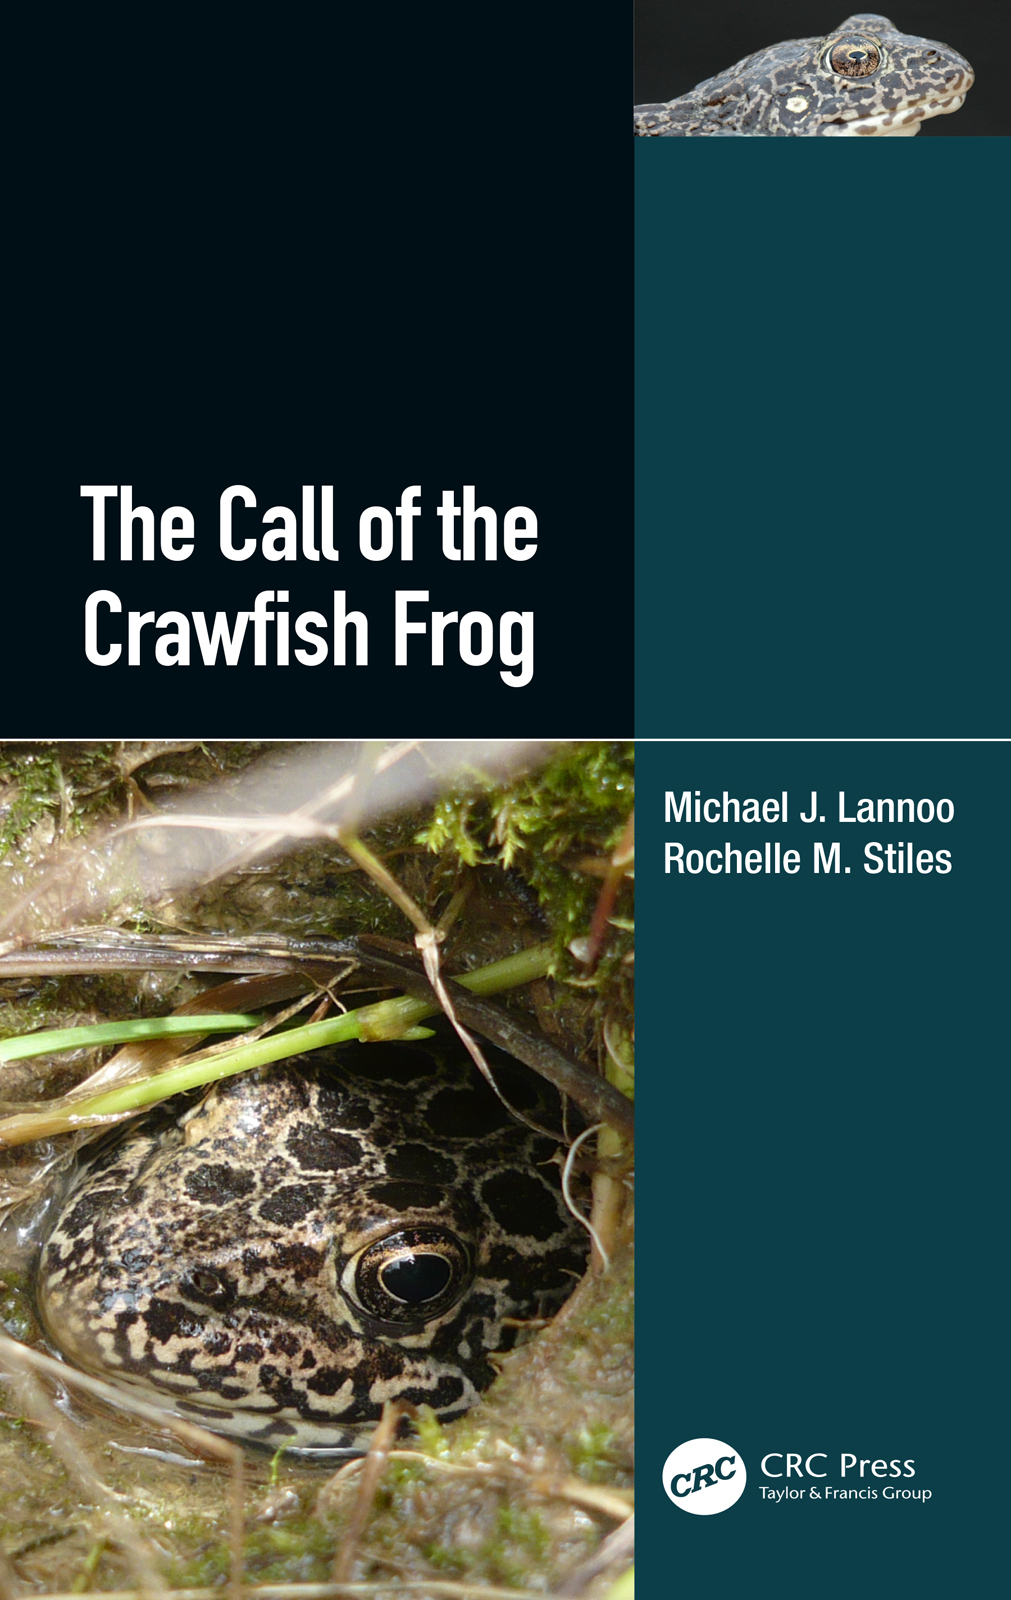 The Call of the Crawfish Frog